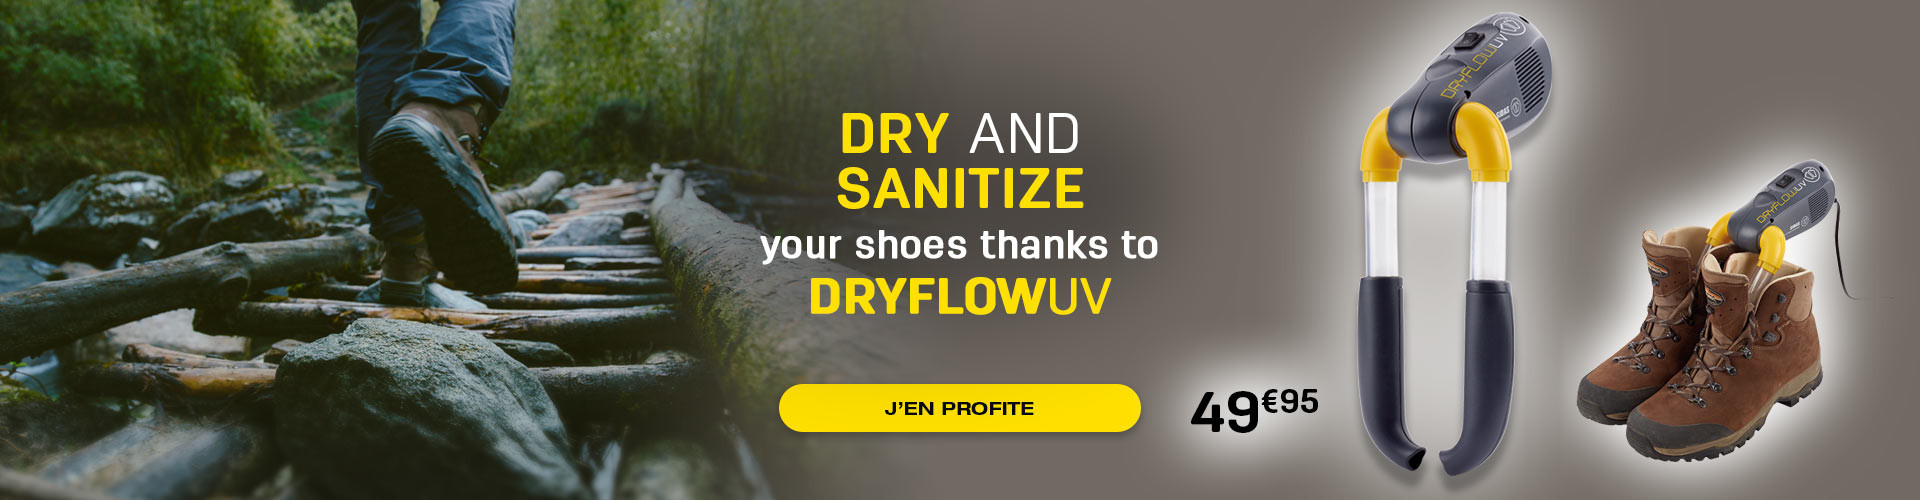 Dry and sanitize your shoes thanks to the Dryflow UV